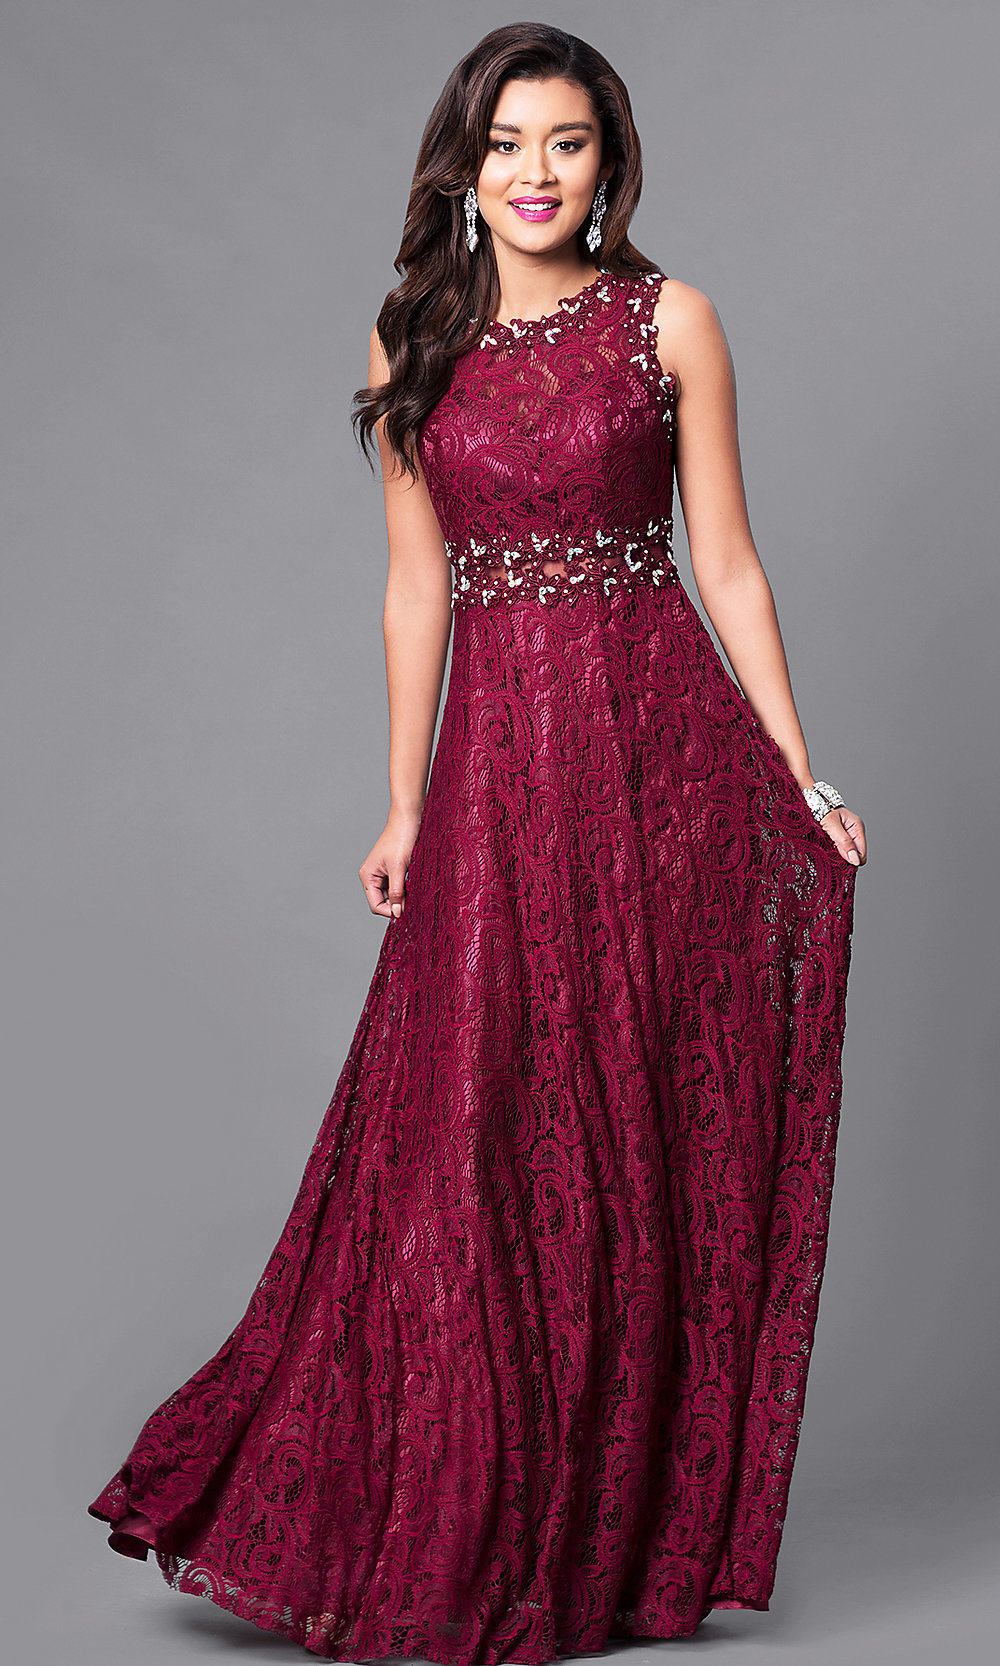 Long Formal Sheer Midriff Lace Gown Promgirl